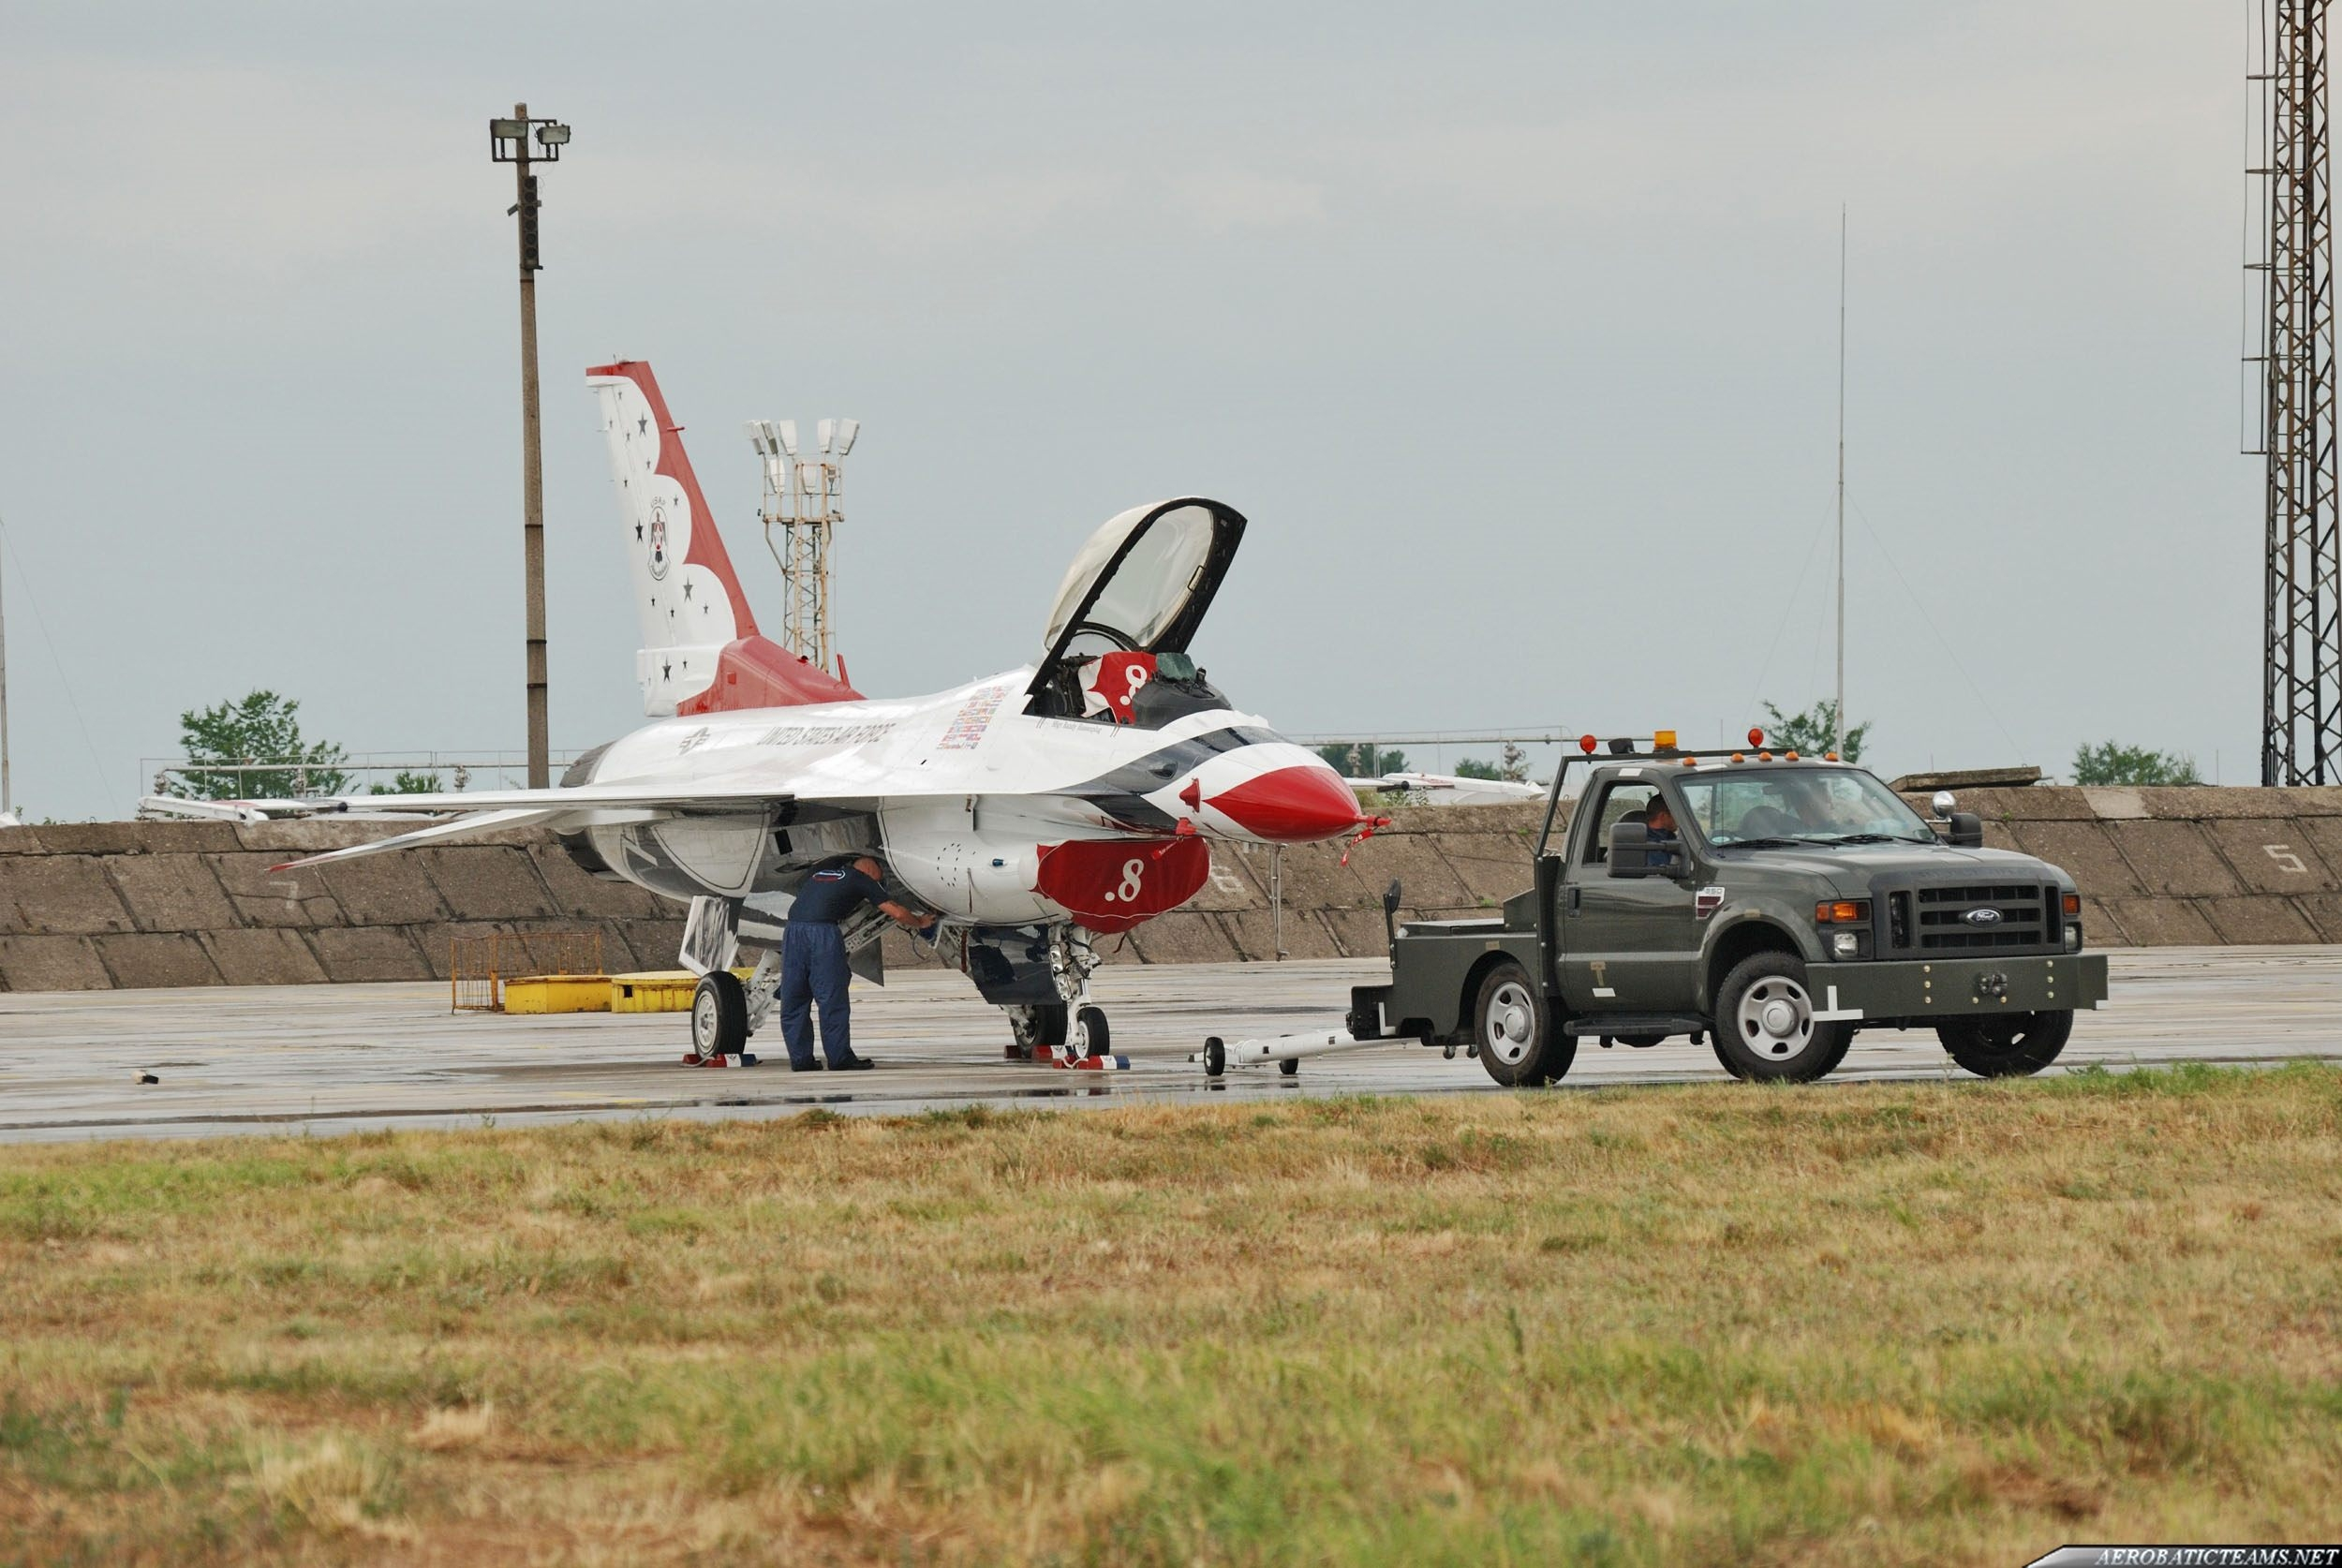 Thunderbirds public day, June 25